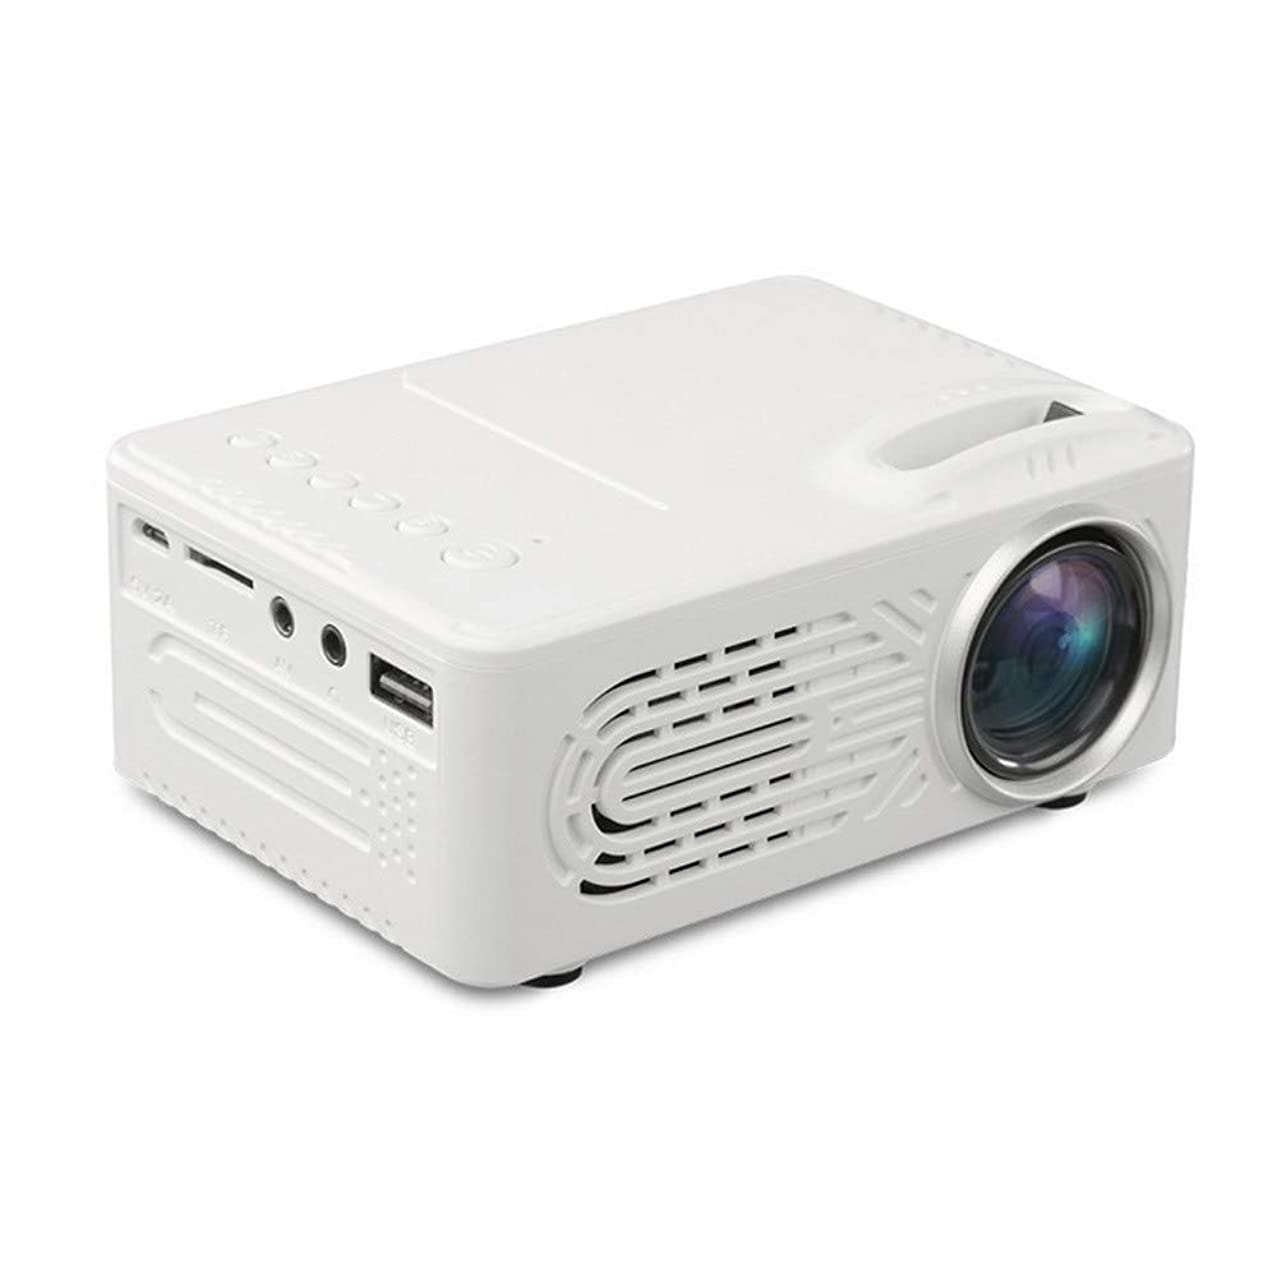 LED Projector - 7000 Lumens 3D 1080P Full HD Mini Portable Home Entertainment Projector, Movie Projectors, Brightness Video Projector, Home Entertainment - 20,000 Hrs - Shipped from US (? White)